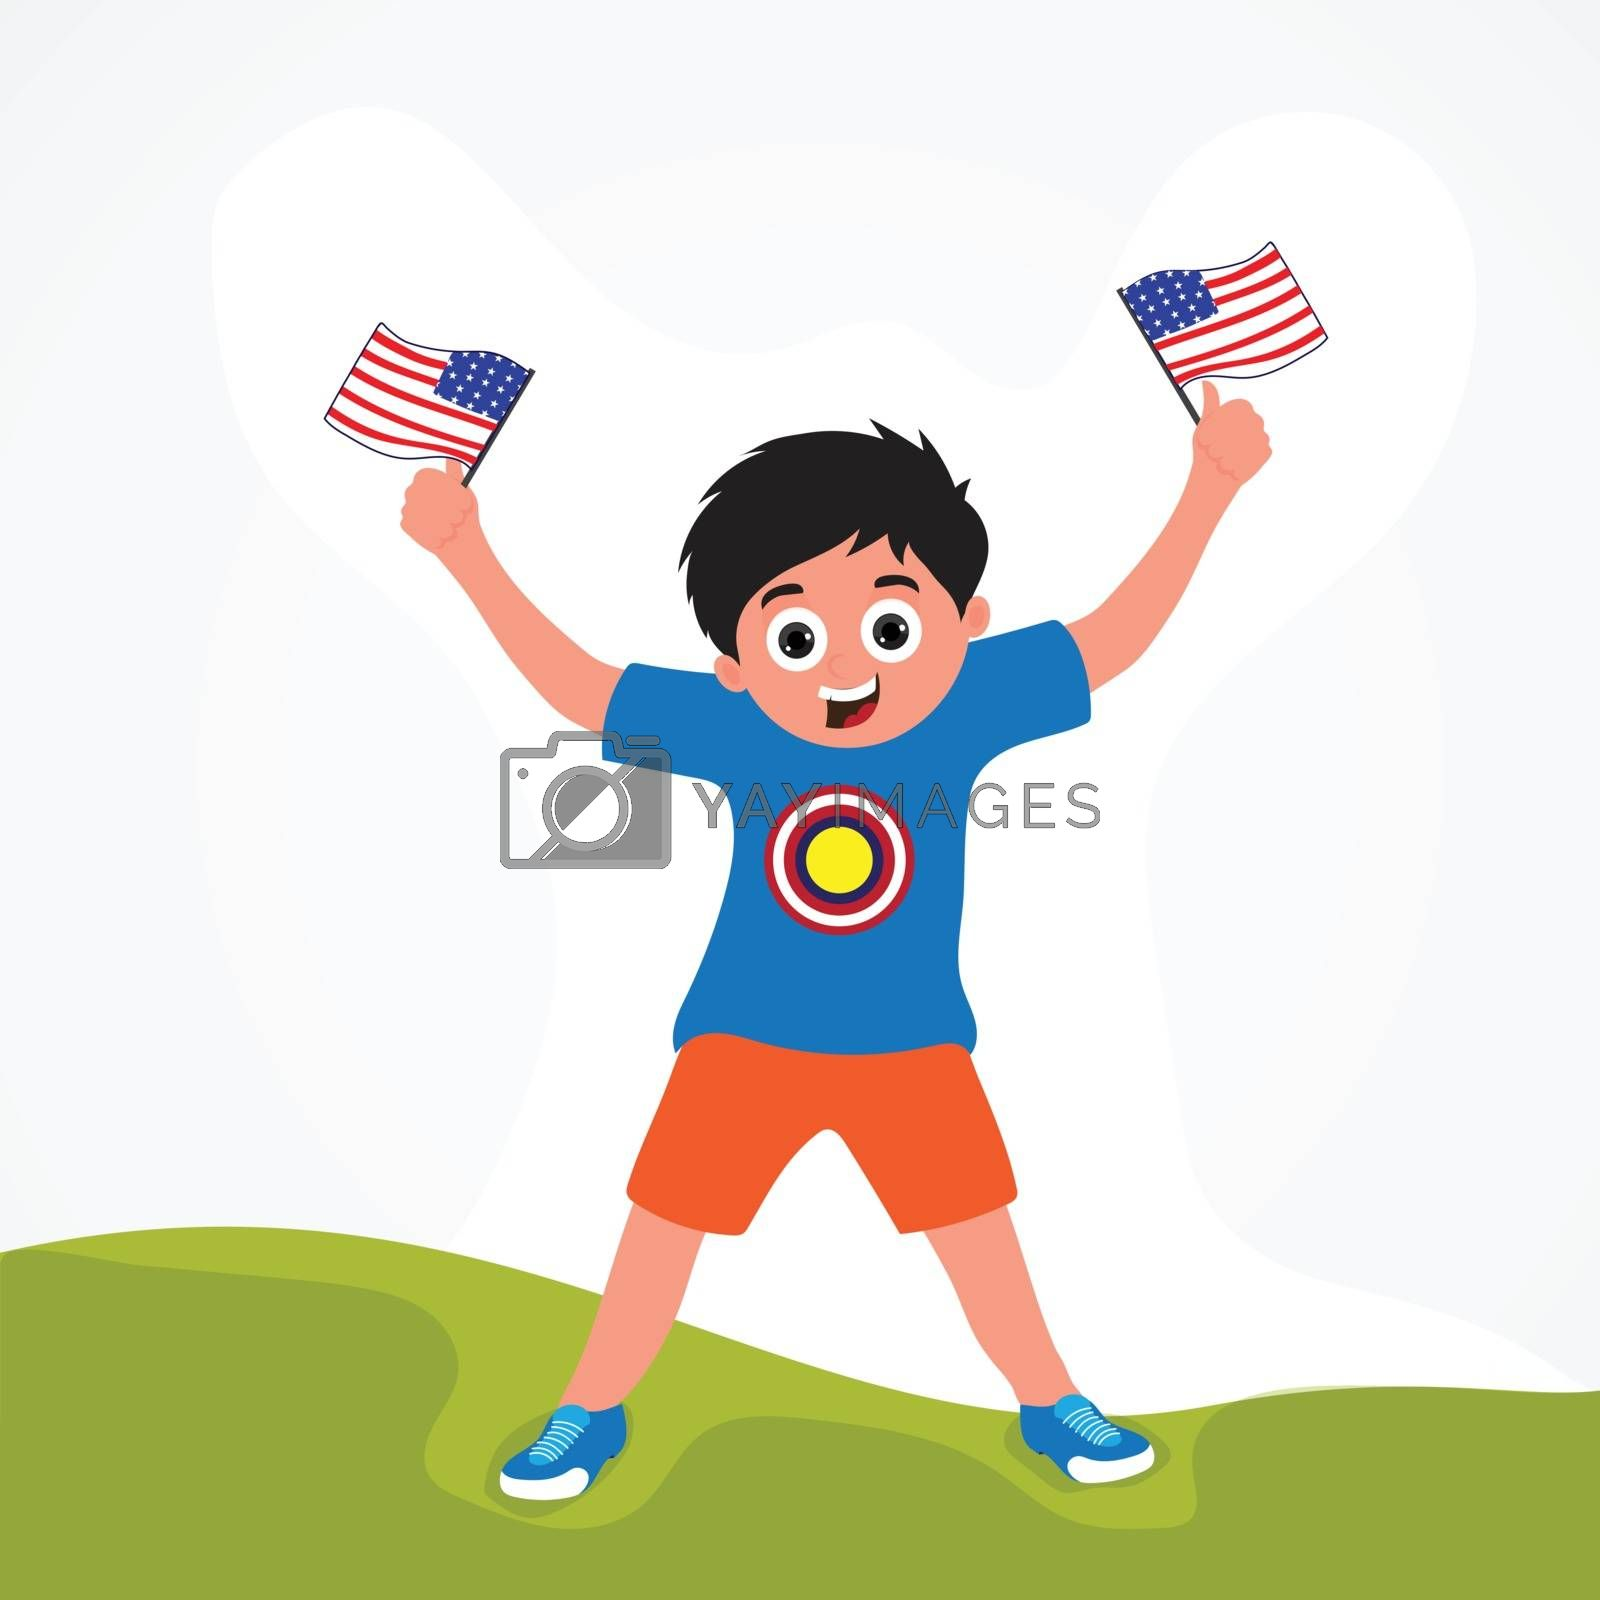 4th of July Flyer Design, with kid holding flag in both hands.